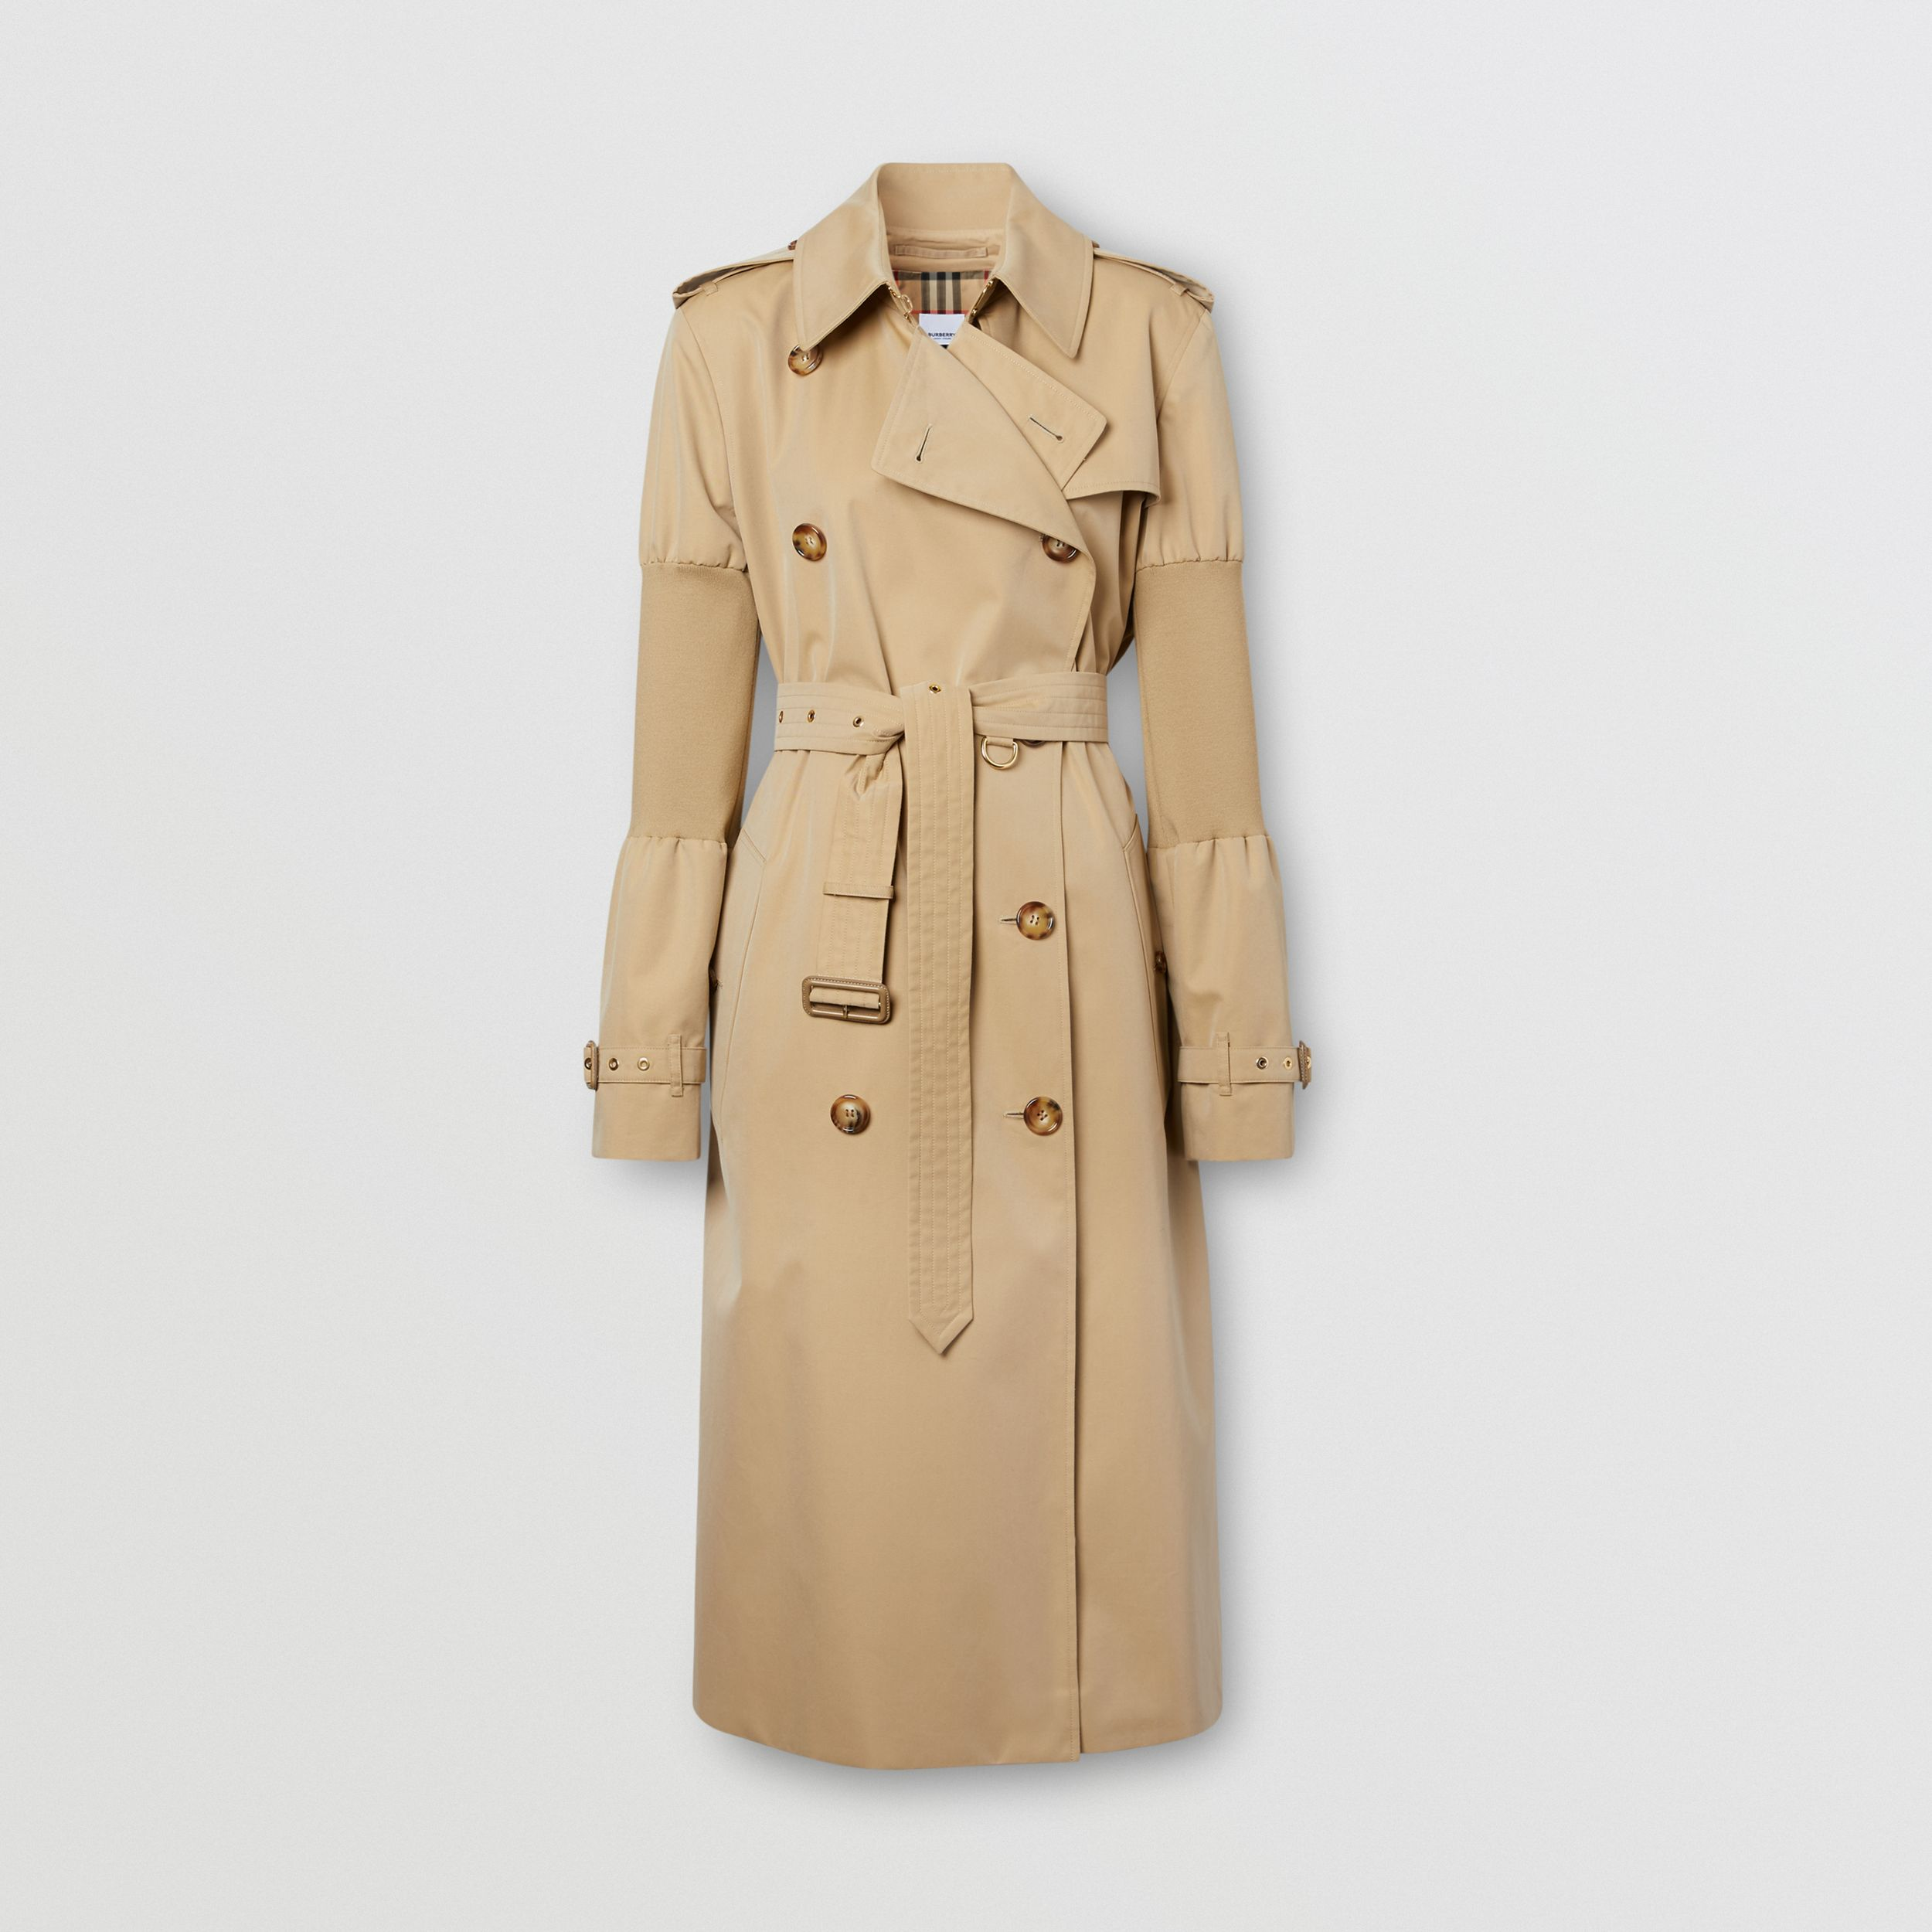 Panelled-sleeve Cotton Gabardine Oversized Trench Coat in Honey - Women | Burberry - 4